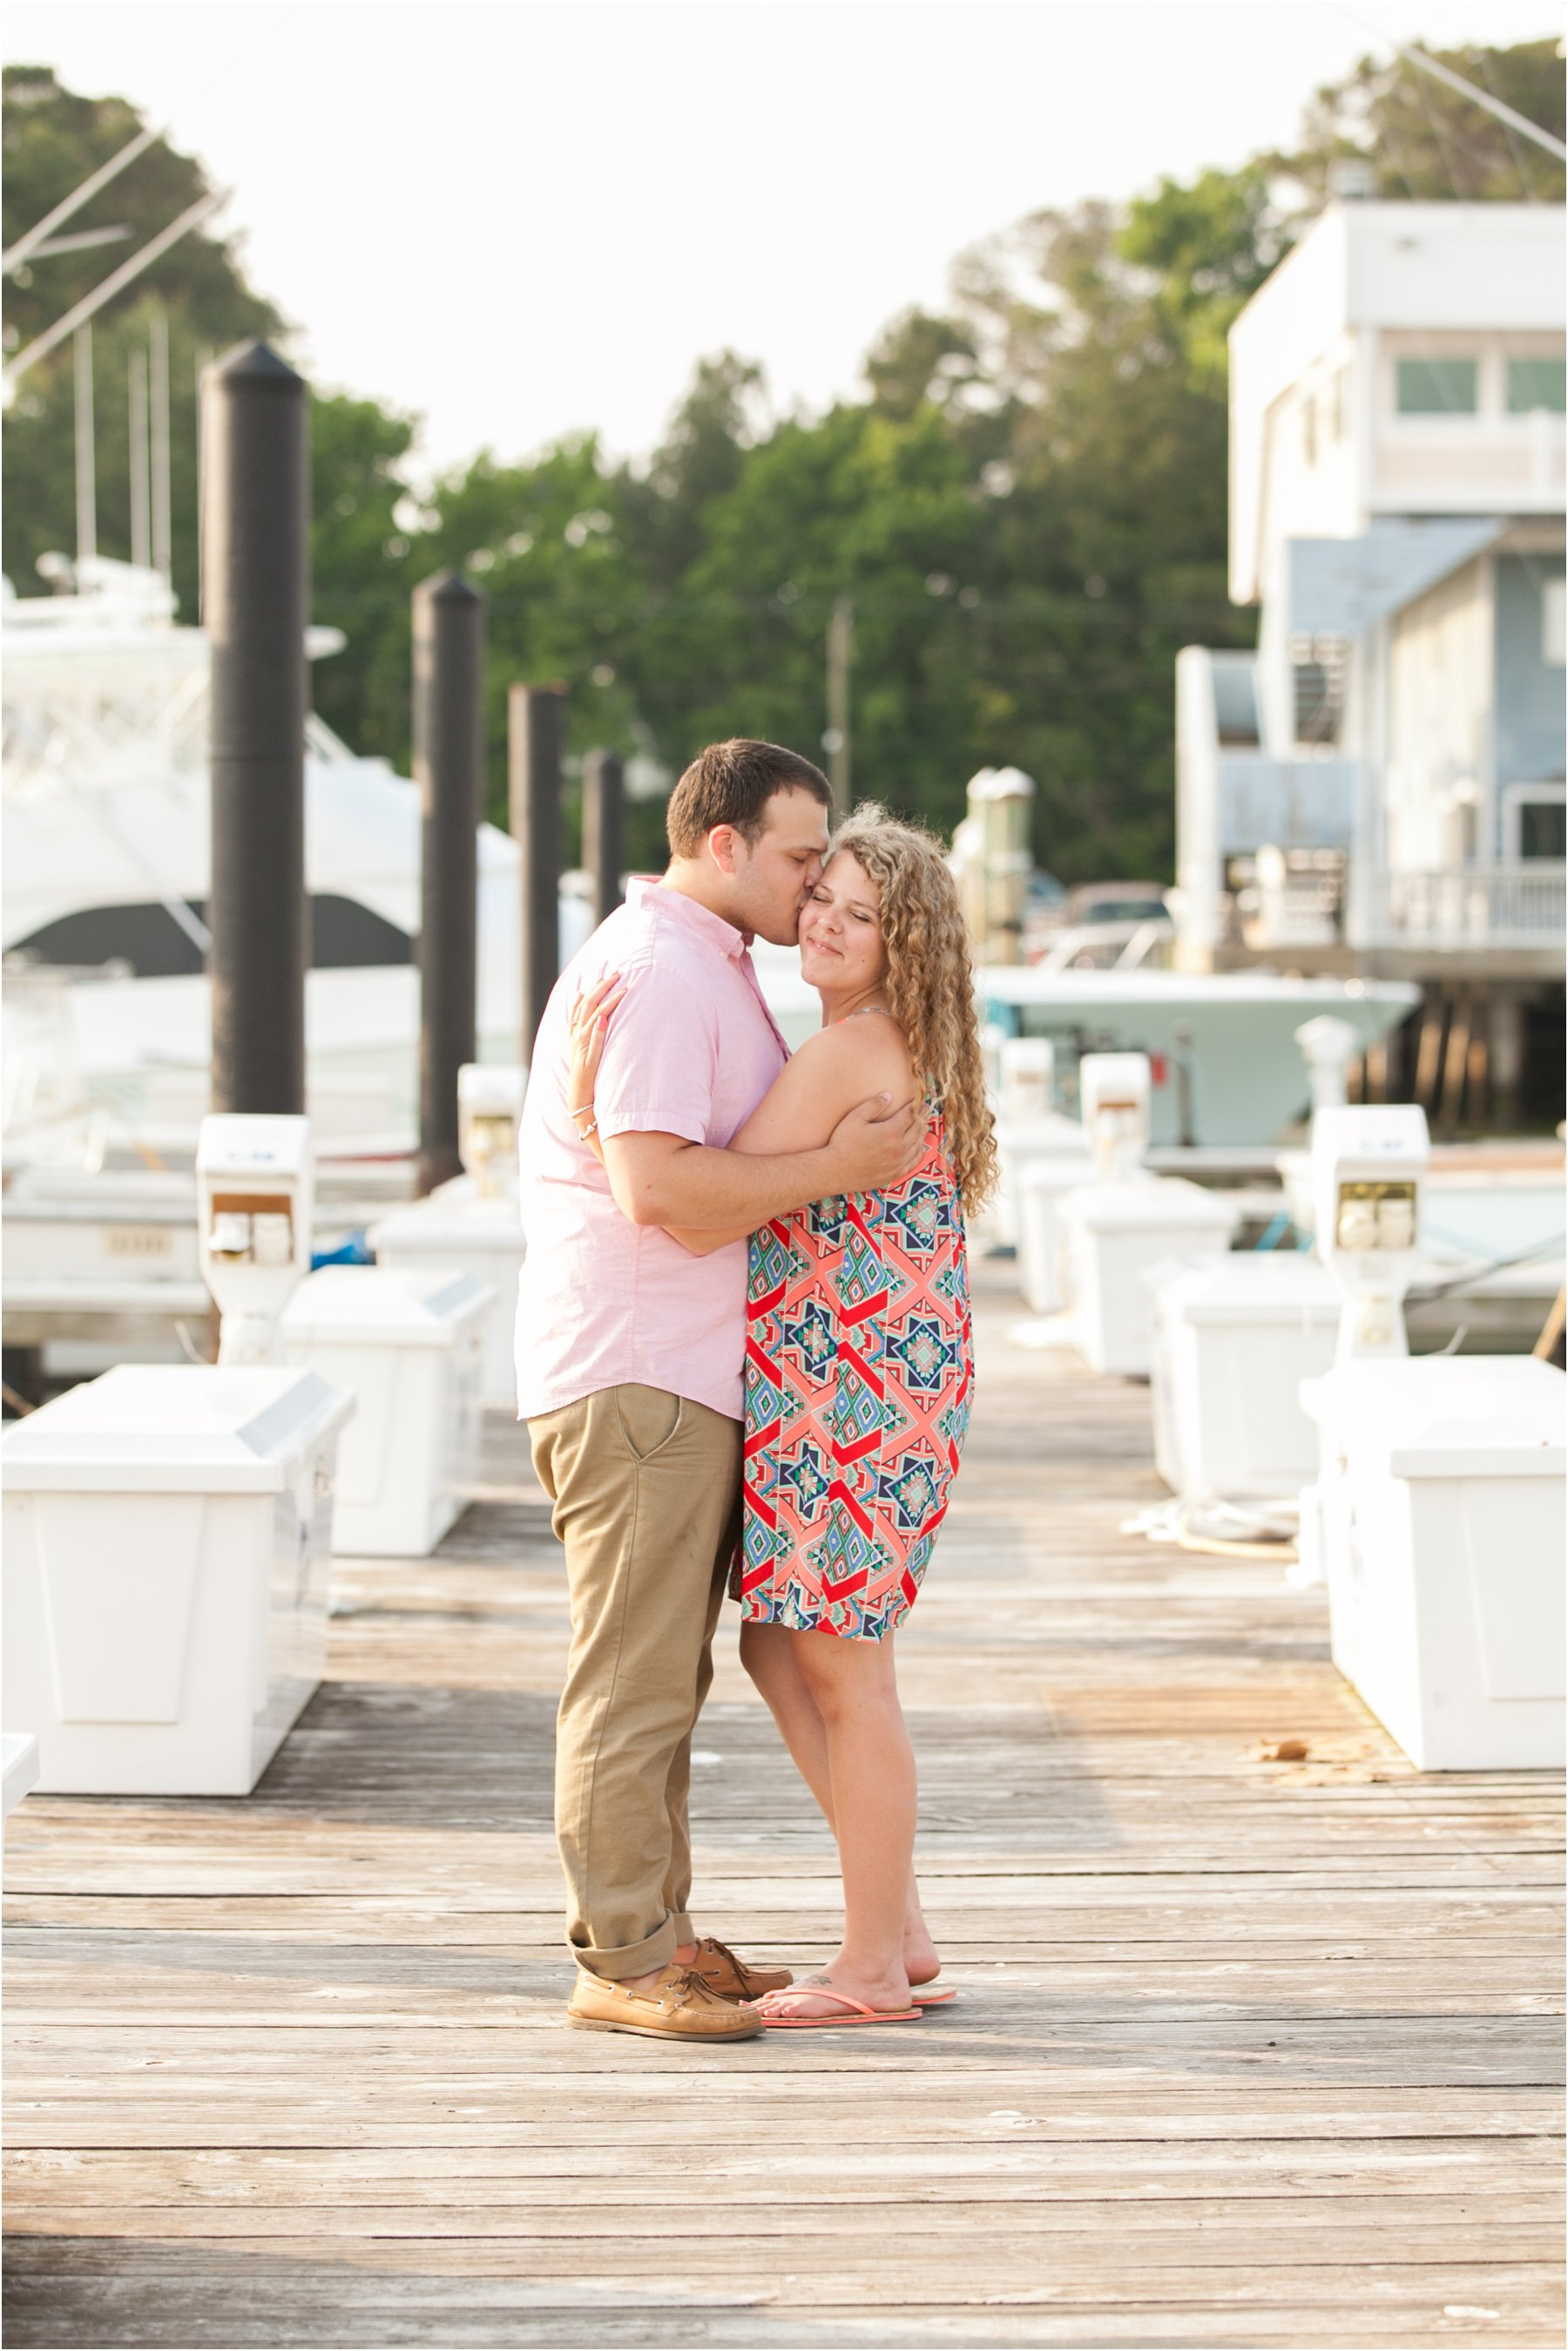 engagement_beach_Photography_Jessica_Ryan_Photography_virginia_virginia_beach_0297